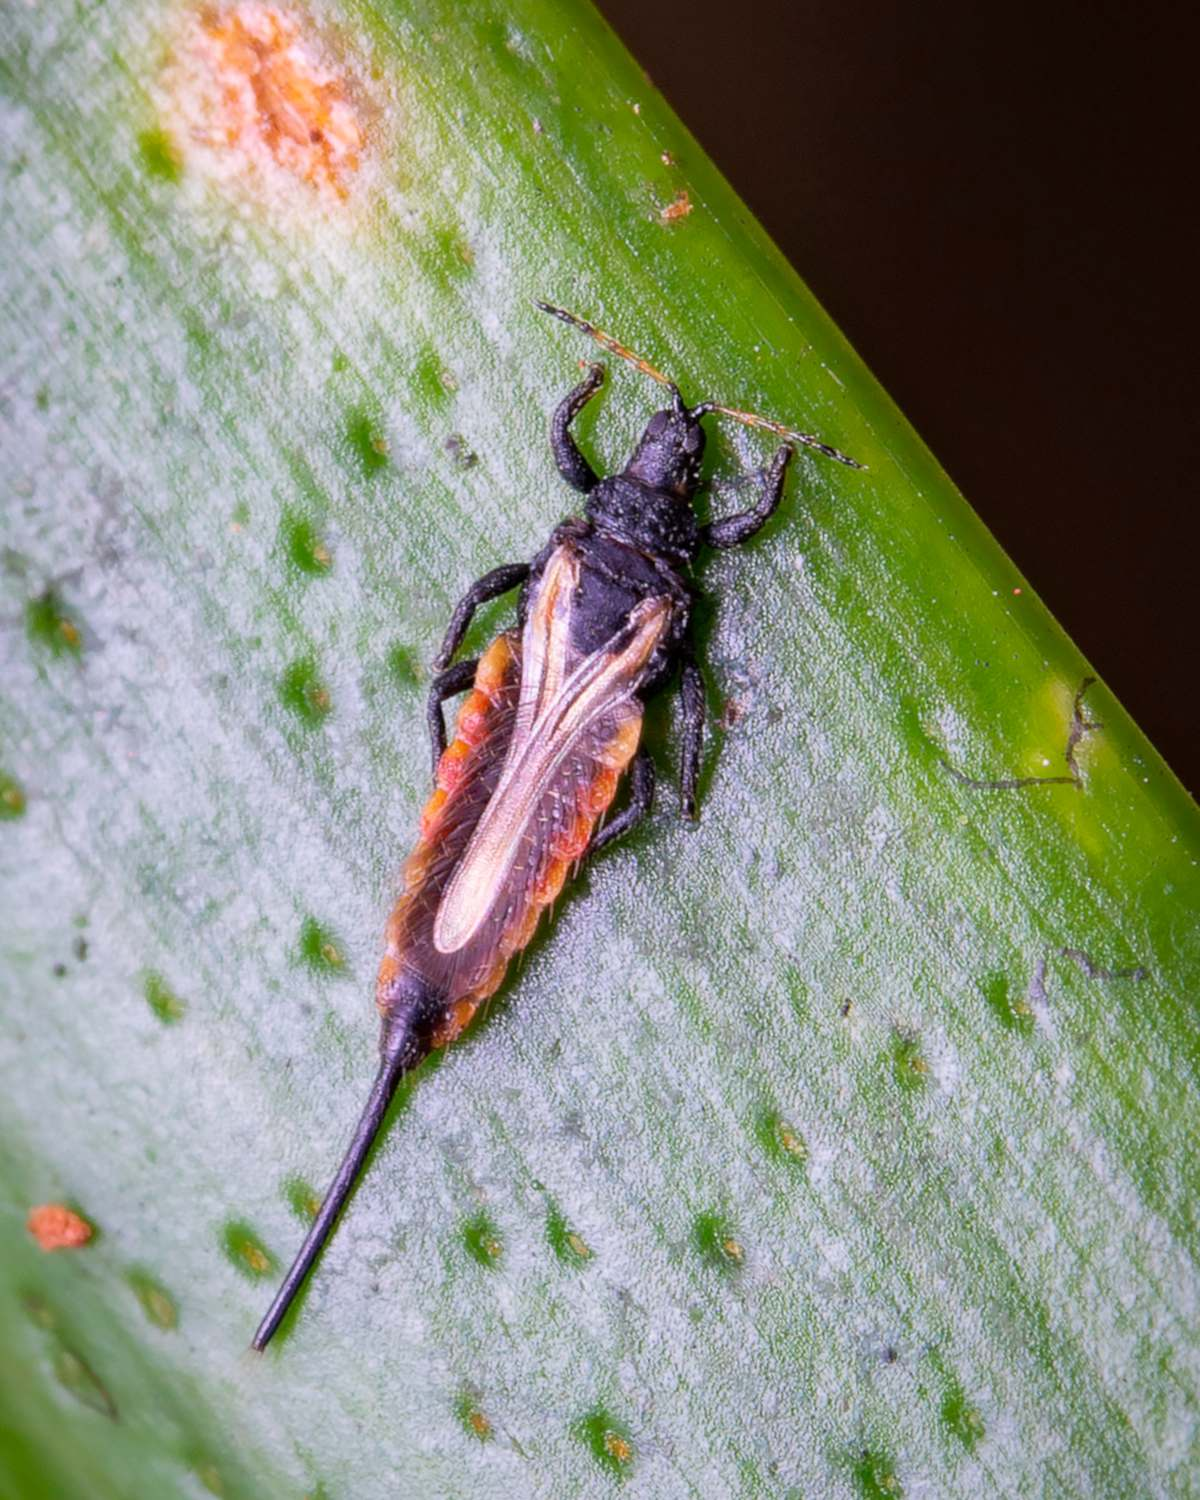 Thrips on a leaf, a rare species